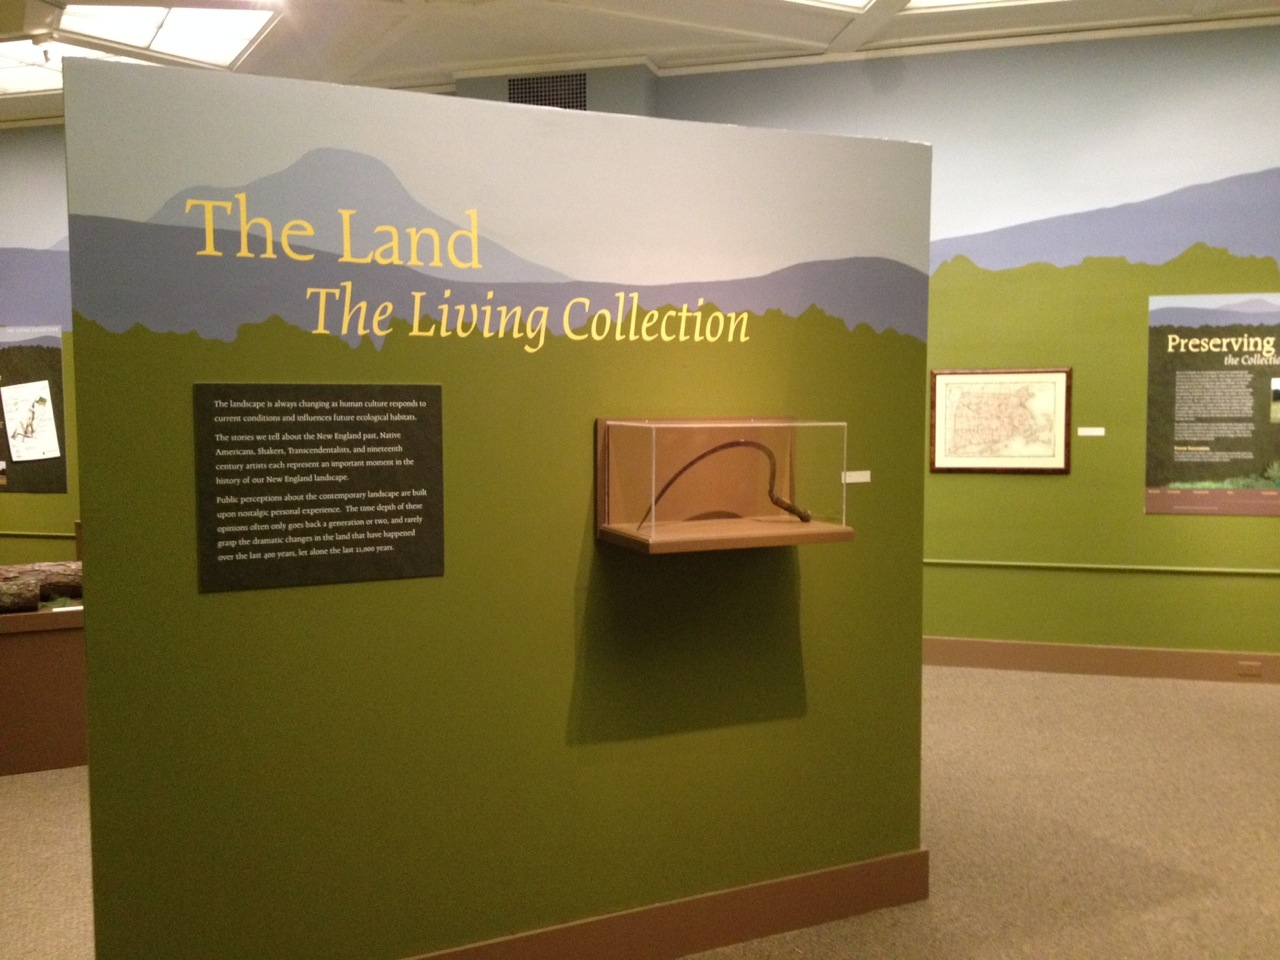 Fruitlands Museum of all the collections at the Fruitlands Museum, their land is the largest interpreting asset as their living collection